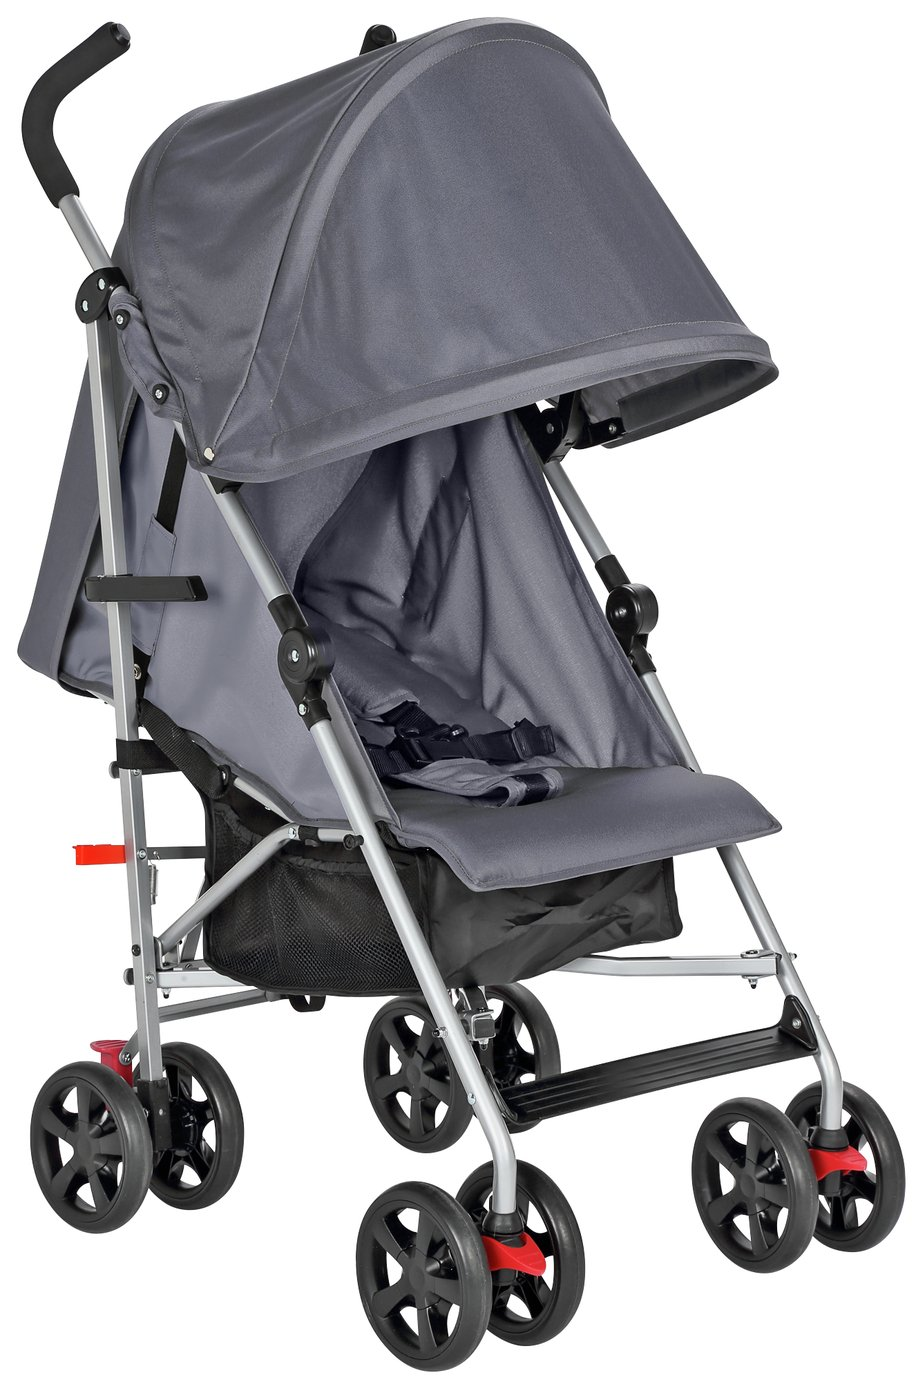 Best Stroller Money Can Buy Review Of Cuggl Hazel From Birth Pushchair